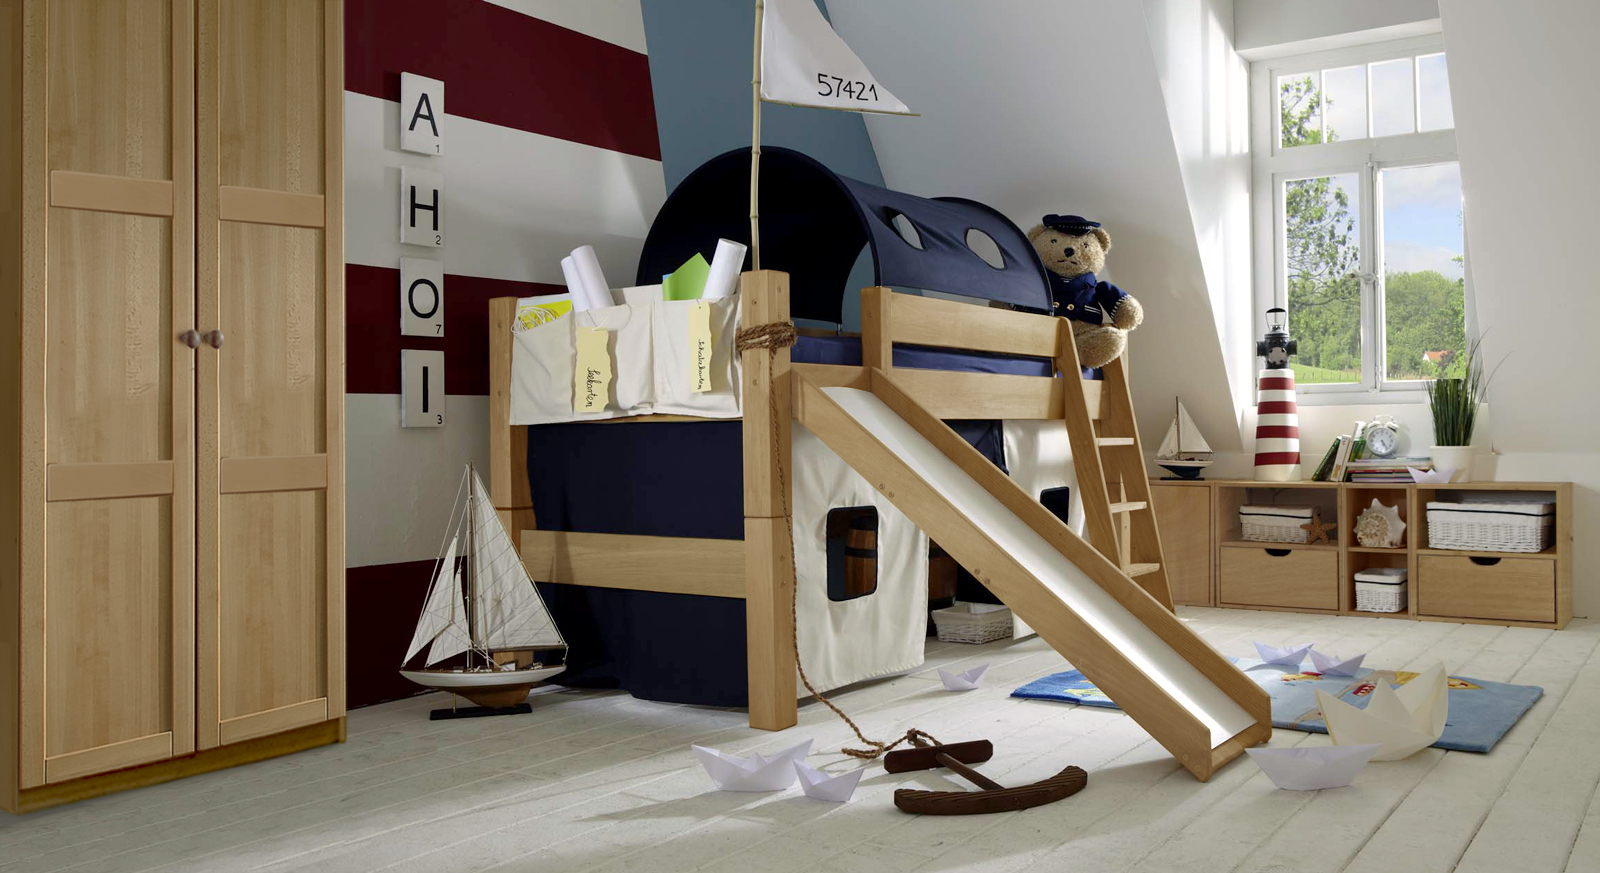 hochbett mit rutsche einrichtung kinderzimmer. Black Bedroom Furniture Sets. Home Design Ideas